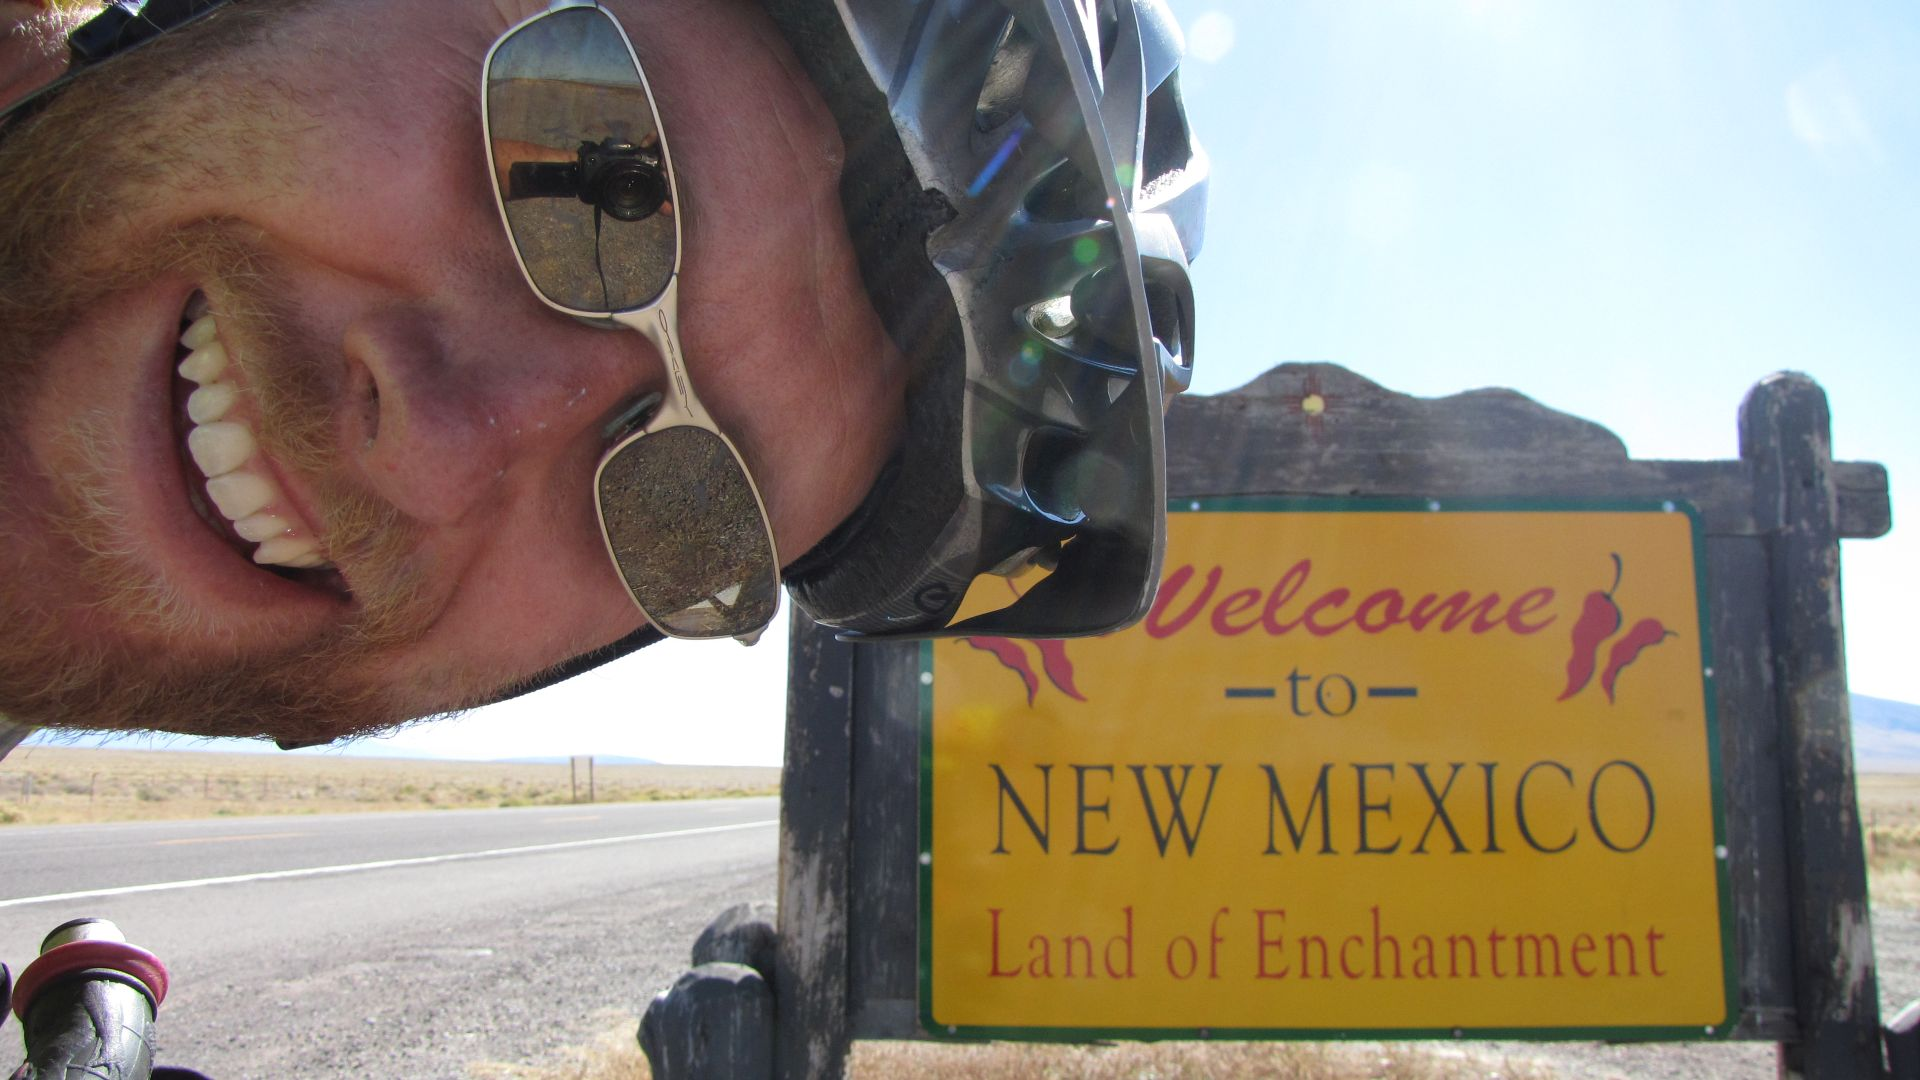 CO-NM border, USA - Gbye Colorado! Part of a ~100 mile day to push away from bad weather in Rockies